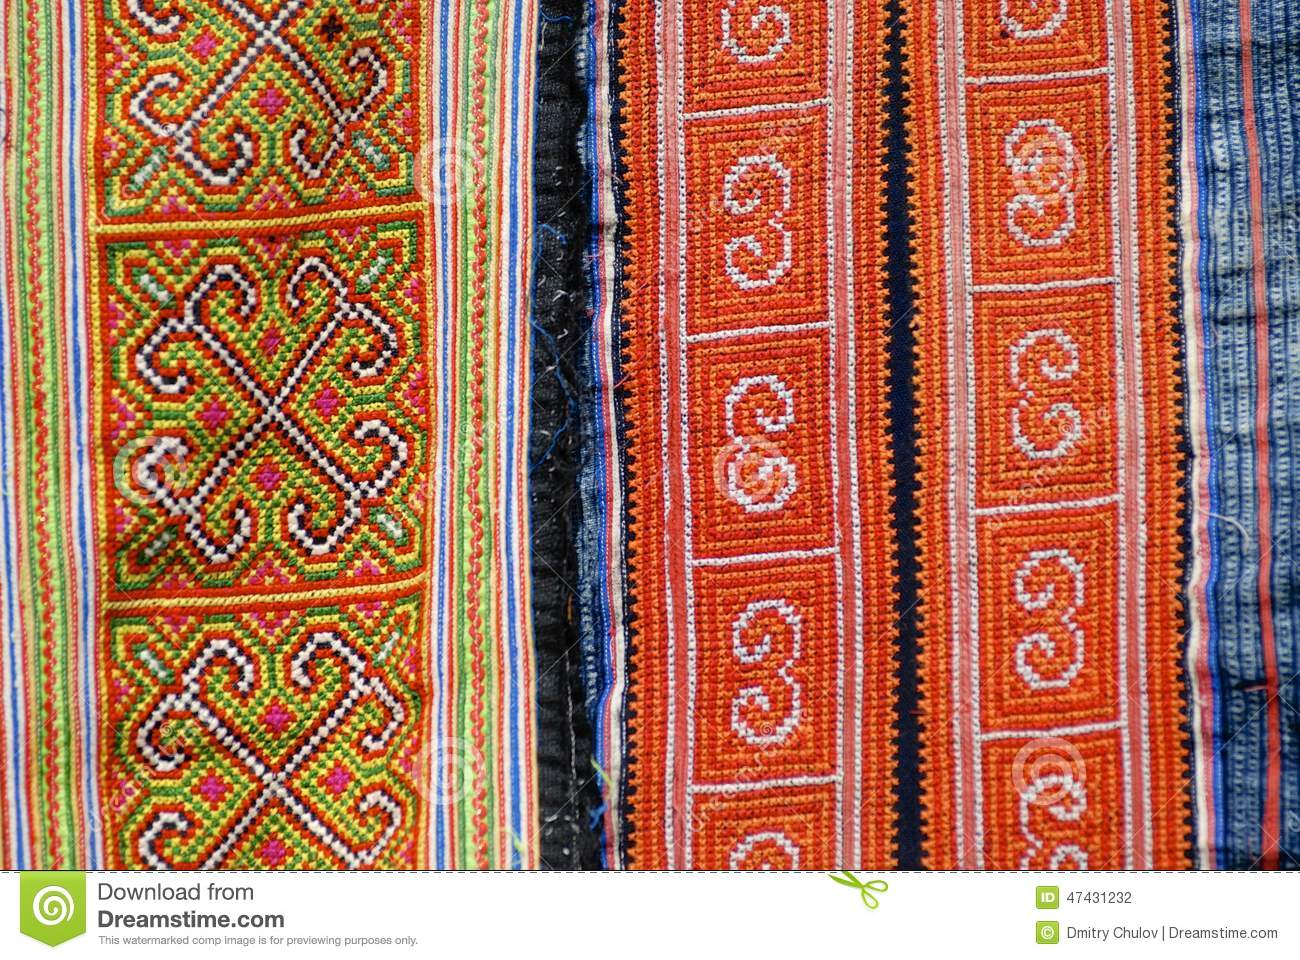 Black Miao minority women traditional costume textile detail. Town of Sapa, north-west of Vietnam. Деталь трад�